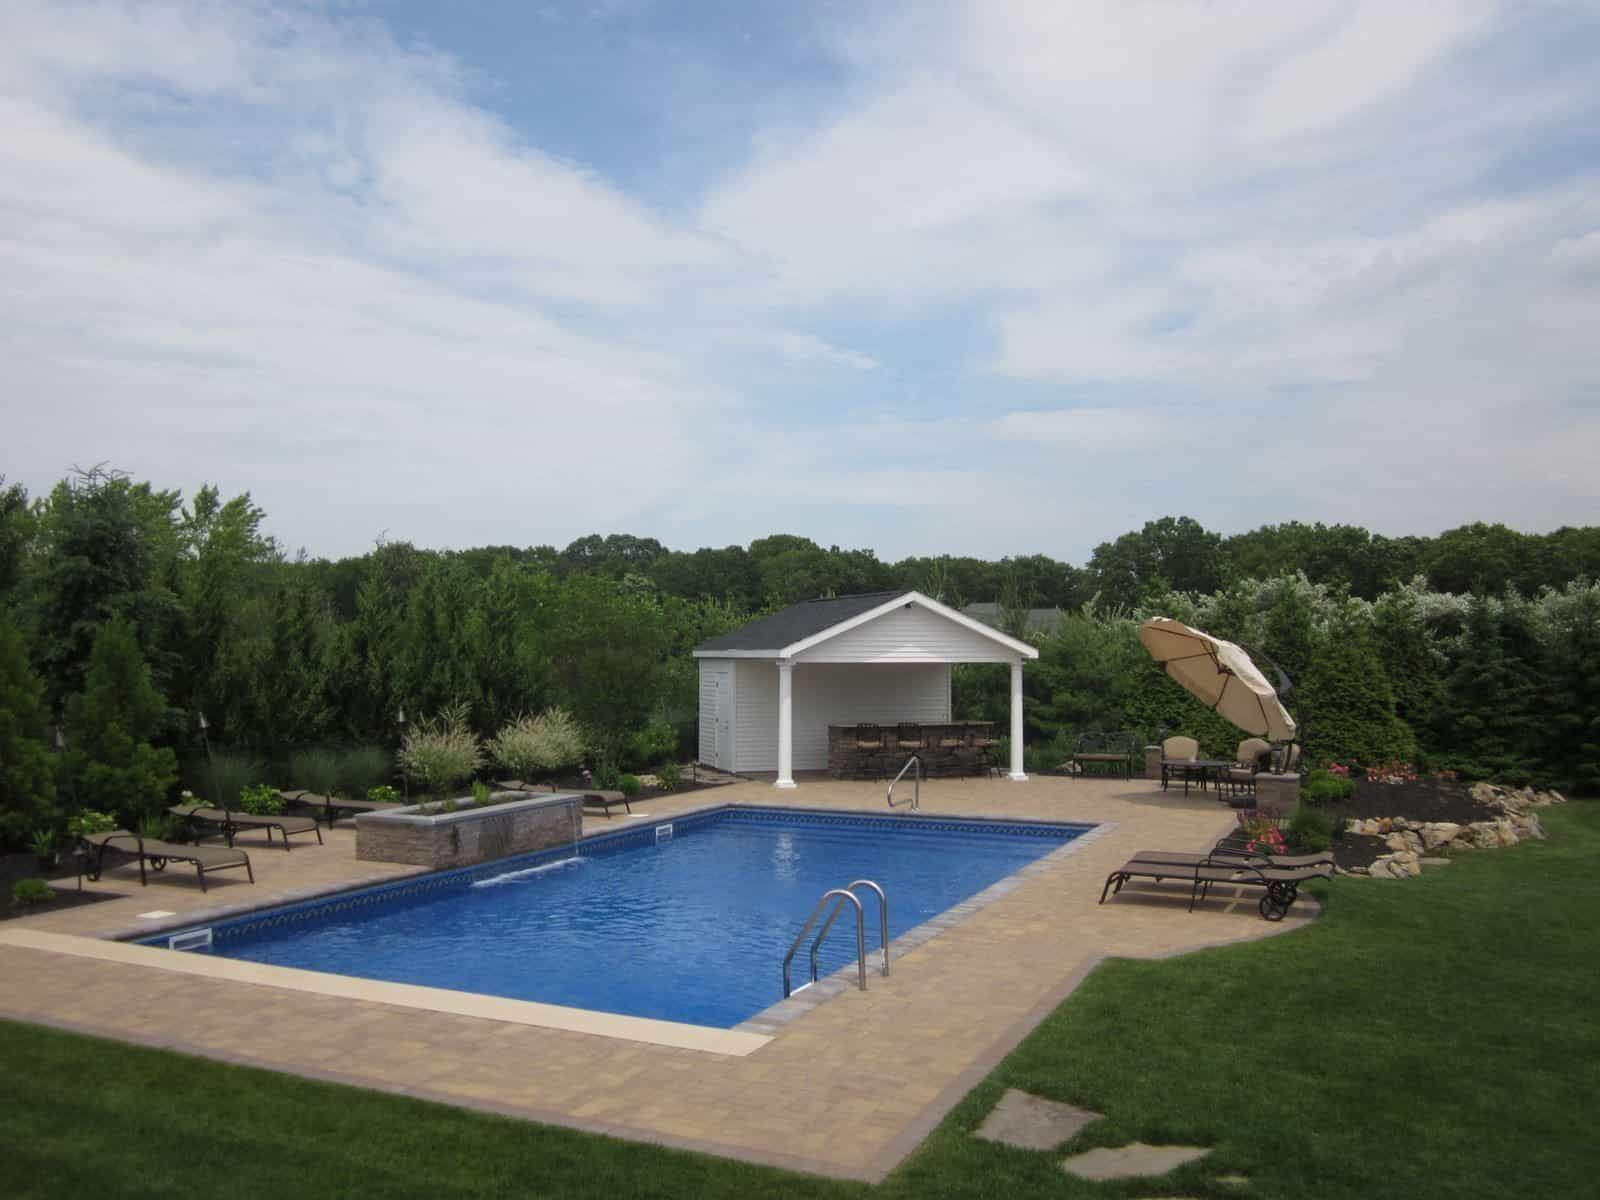 18' x 42' Pool with full length steps & In-Coping Automatic Cover - Dix Hills, Long Island NY